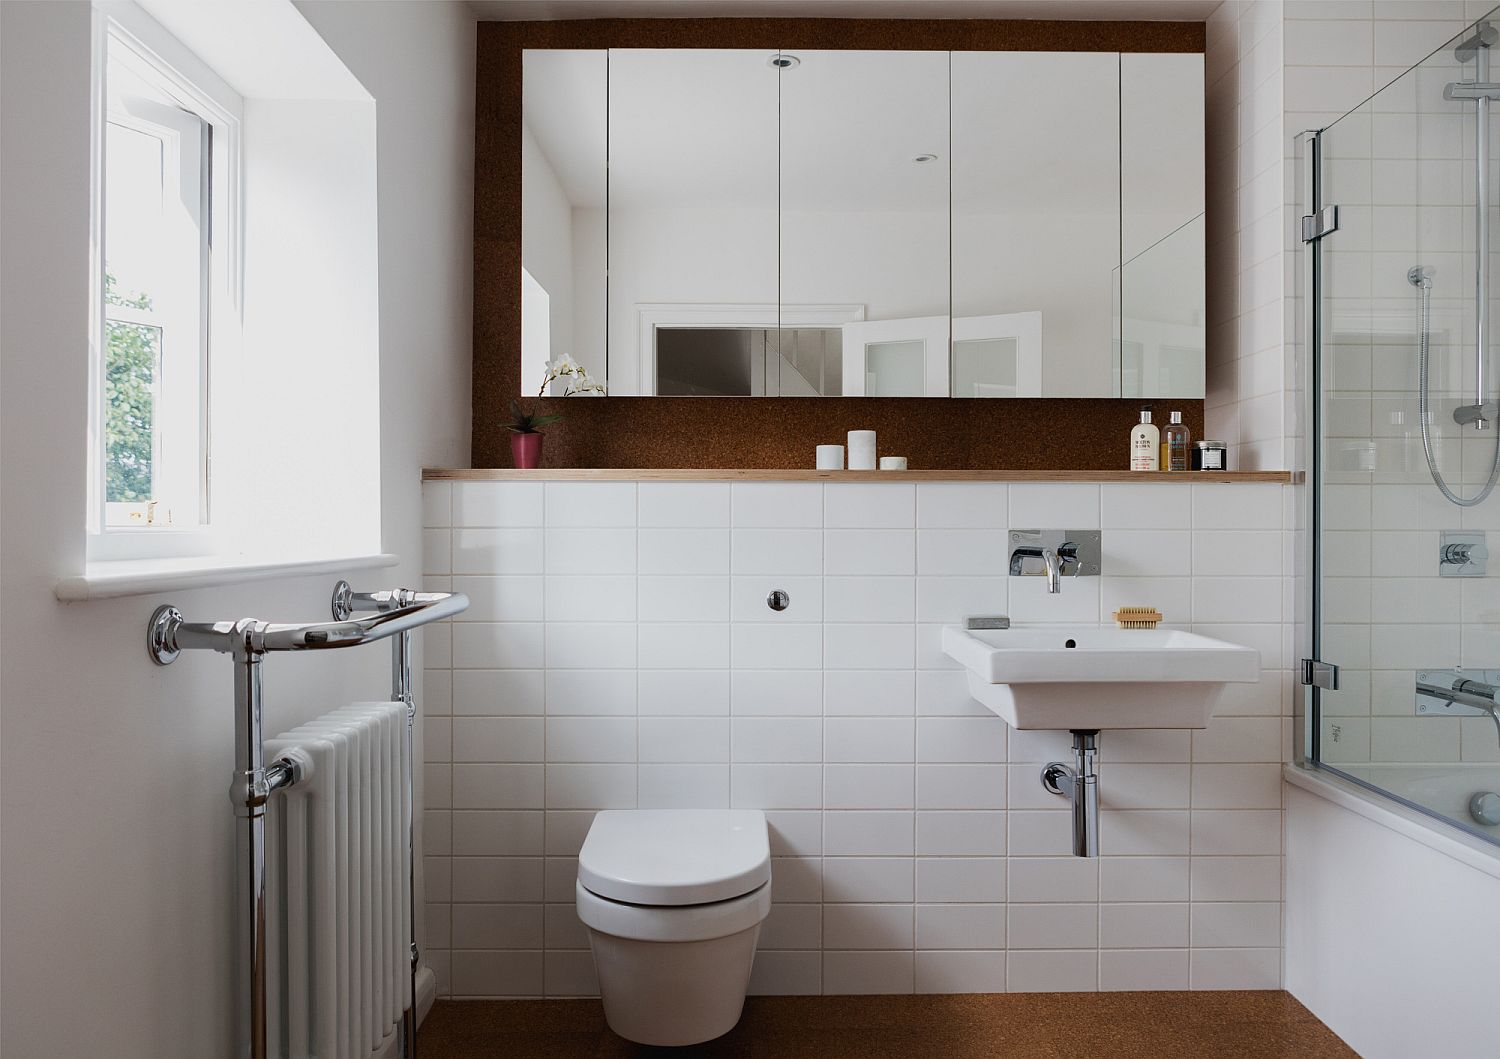 Modern bathroom in white with white tiles and cork floor